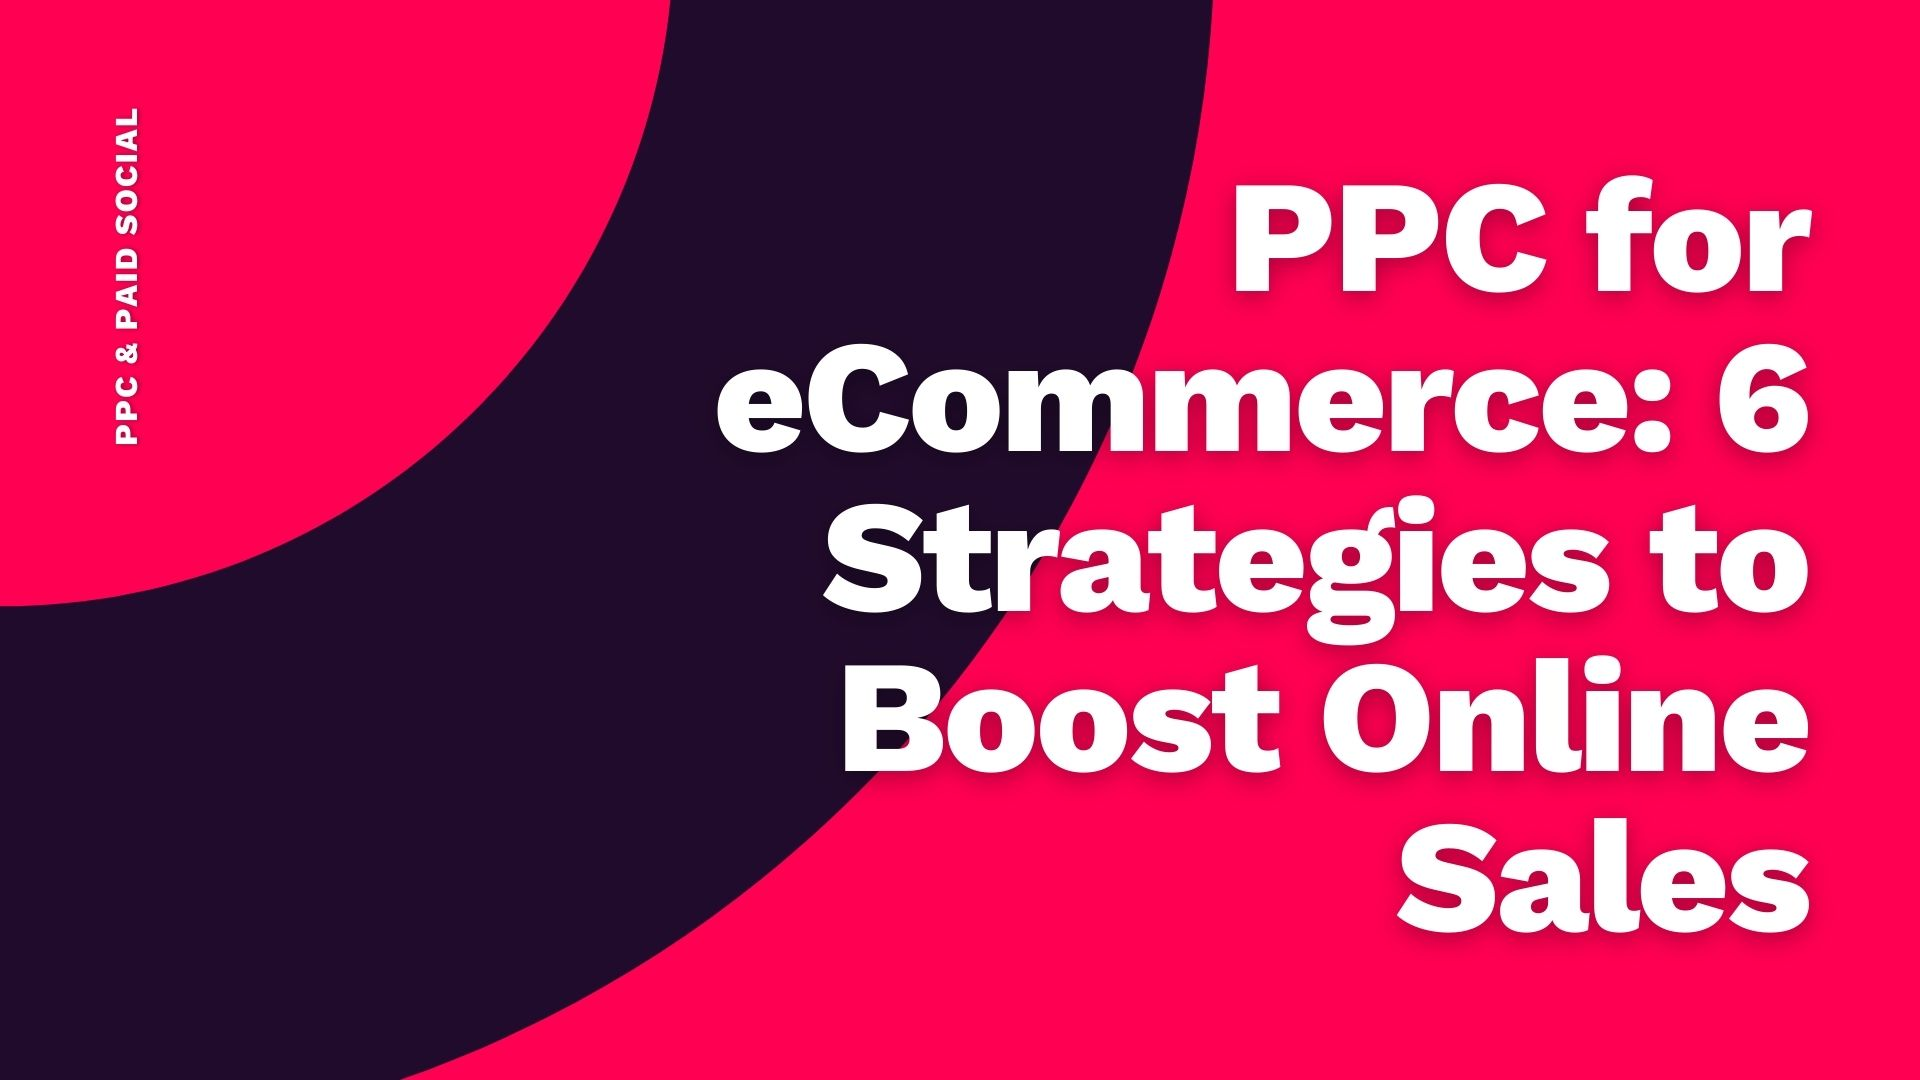 Common Ground - ppc for ecommerce - strategies to boost online sales